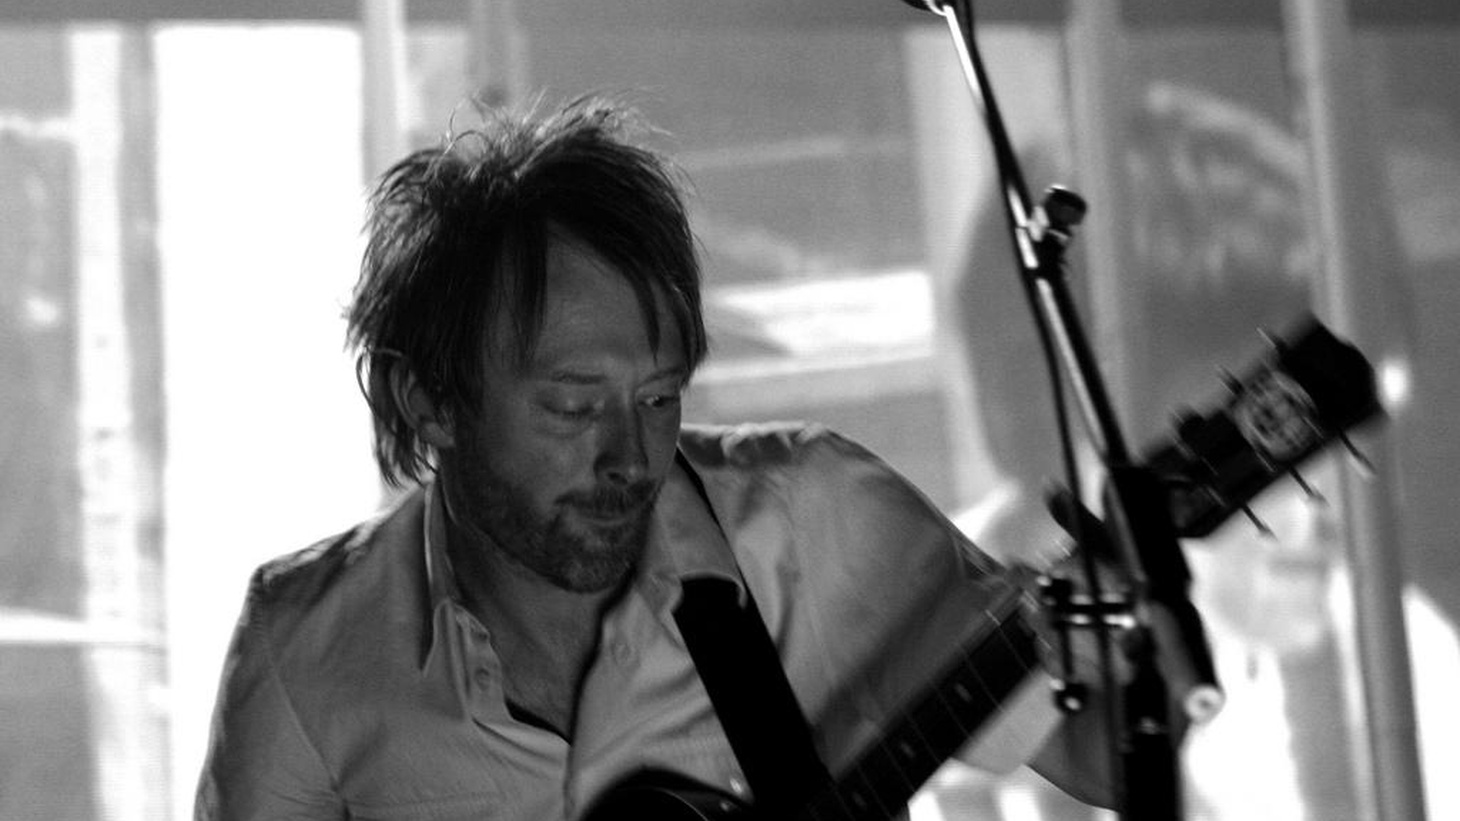 Thom Yorke and Jonny Greenwood of Radiohead join host Chris Douridas for a live performance and interview.